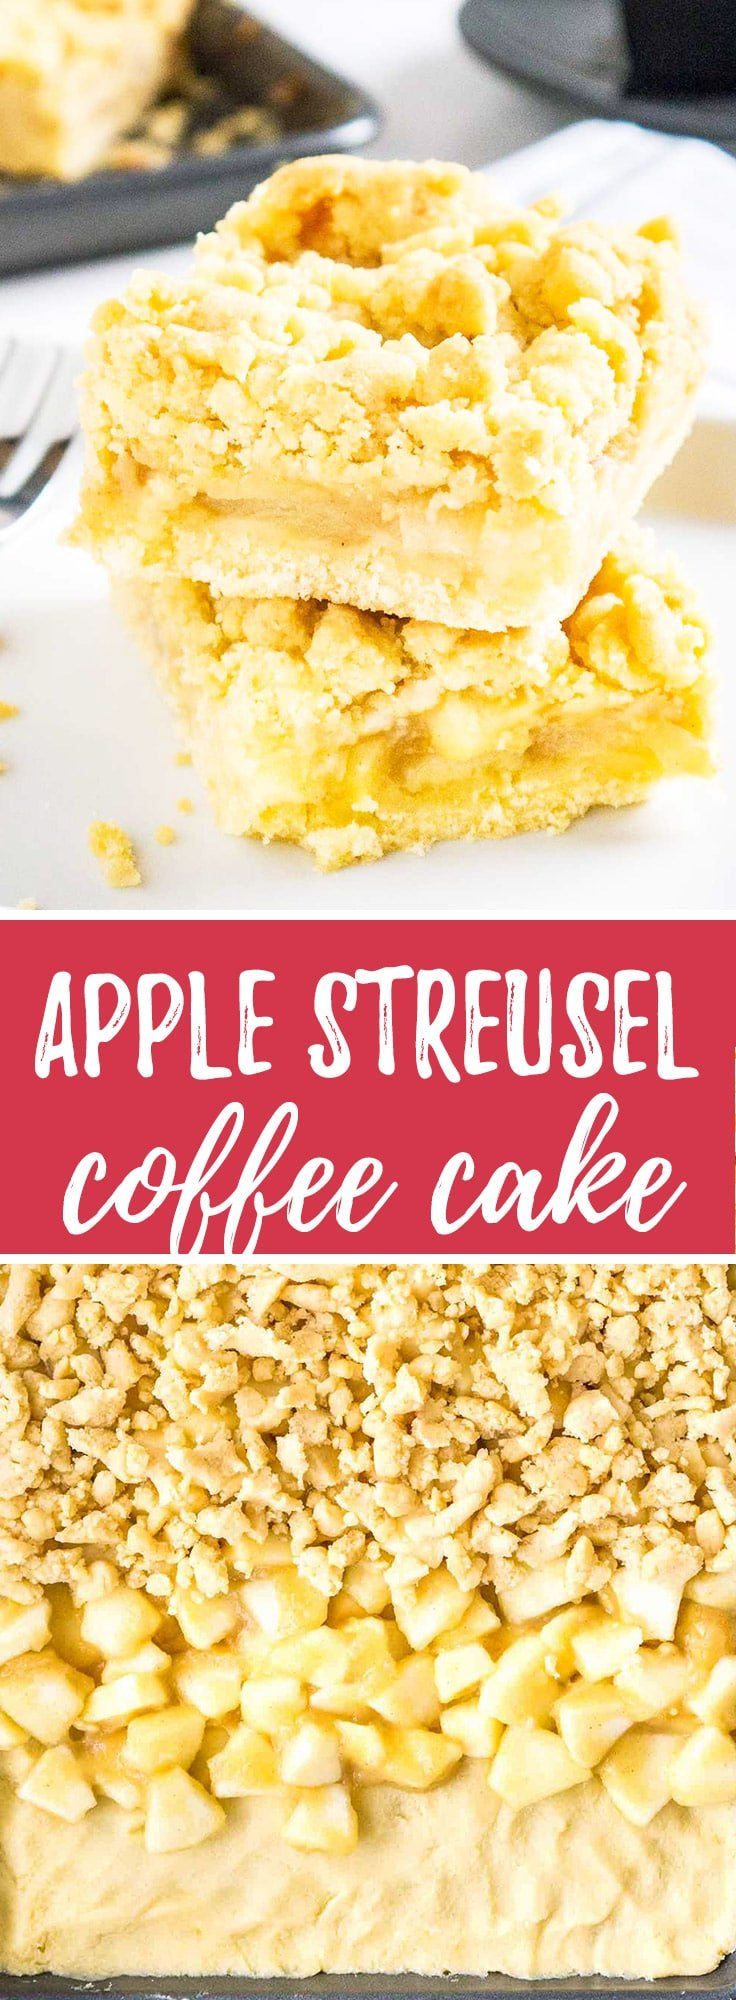 Apple Streusel Sheet Cake is so easy to make from scratch and tastes amazing! A simple but so flavorful German apple cake that's topped with the most delicious cookie-like streusel.